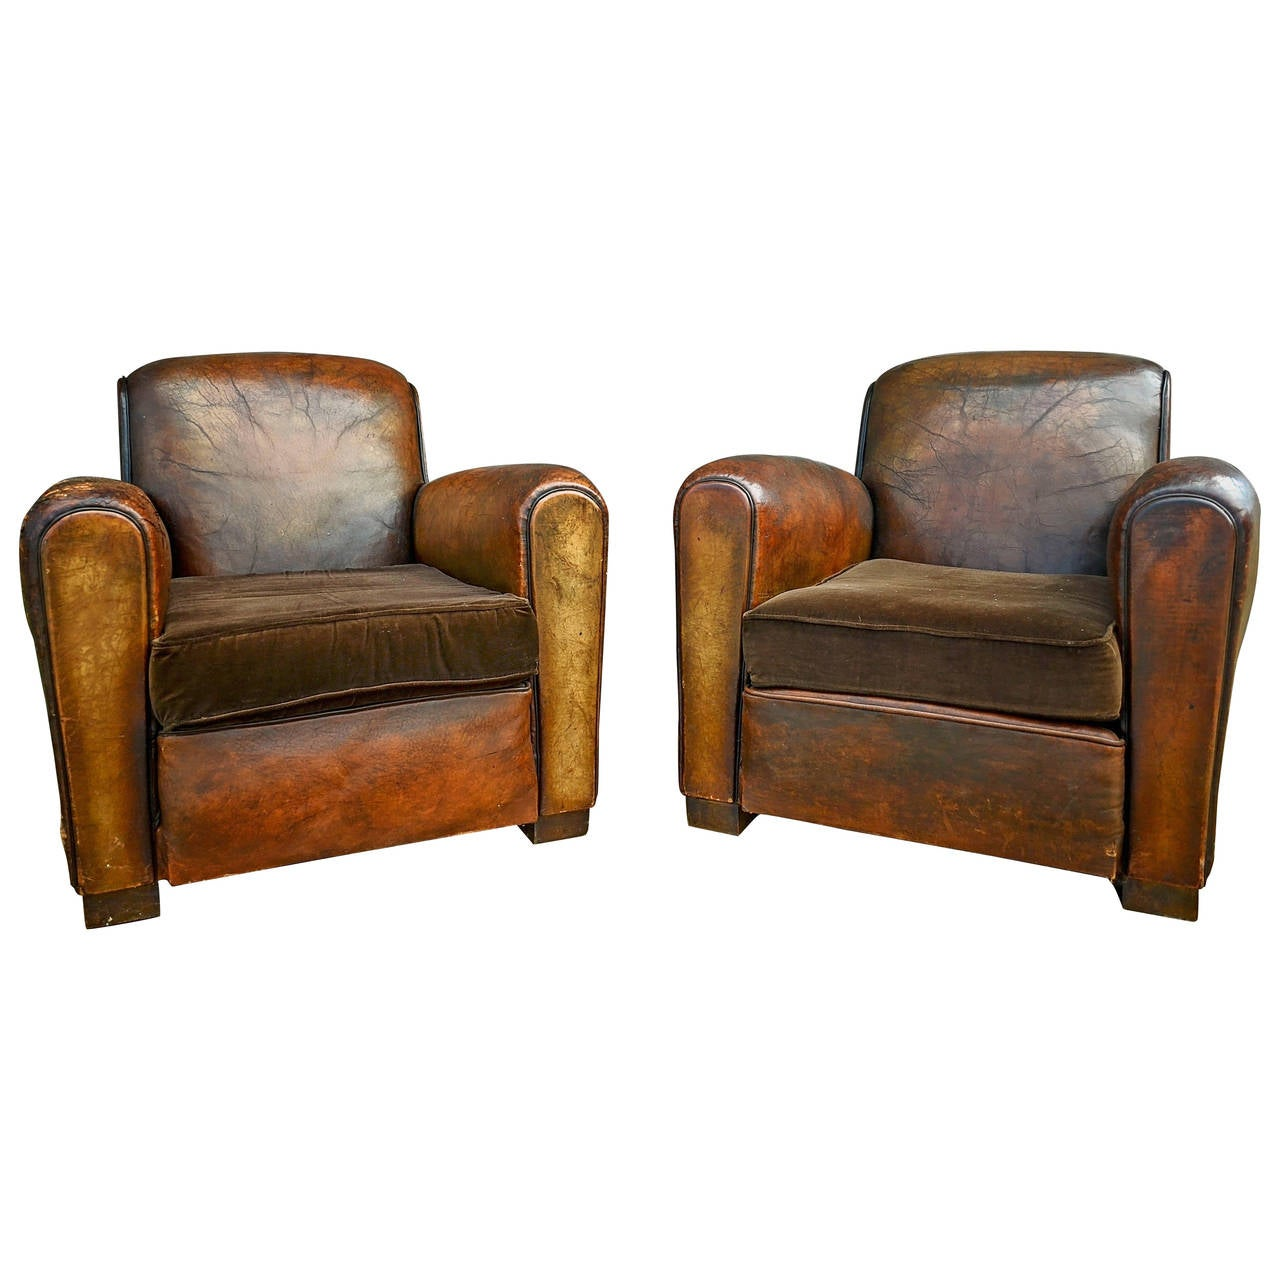 French Club Chair Pair Of French Leather Club Chairs With Velvet Cushions